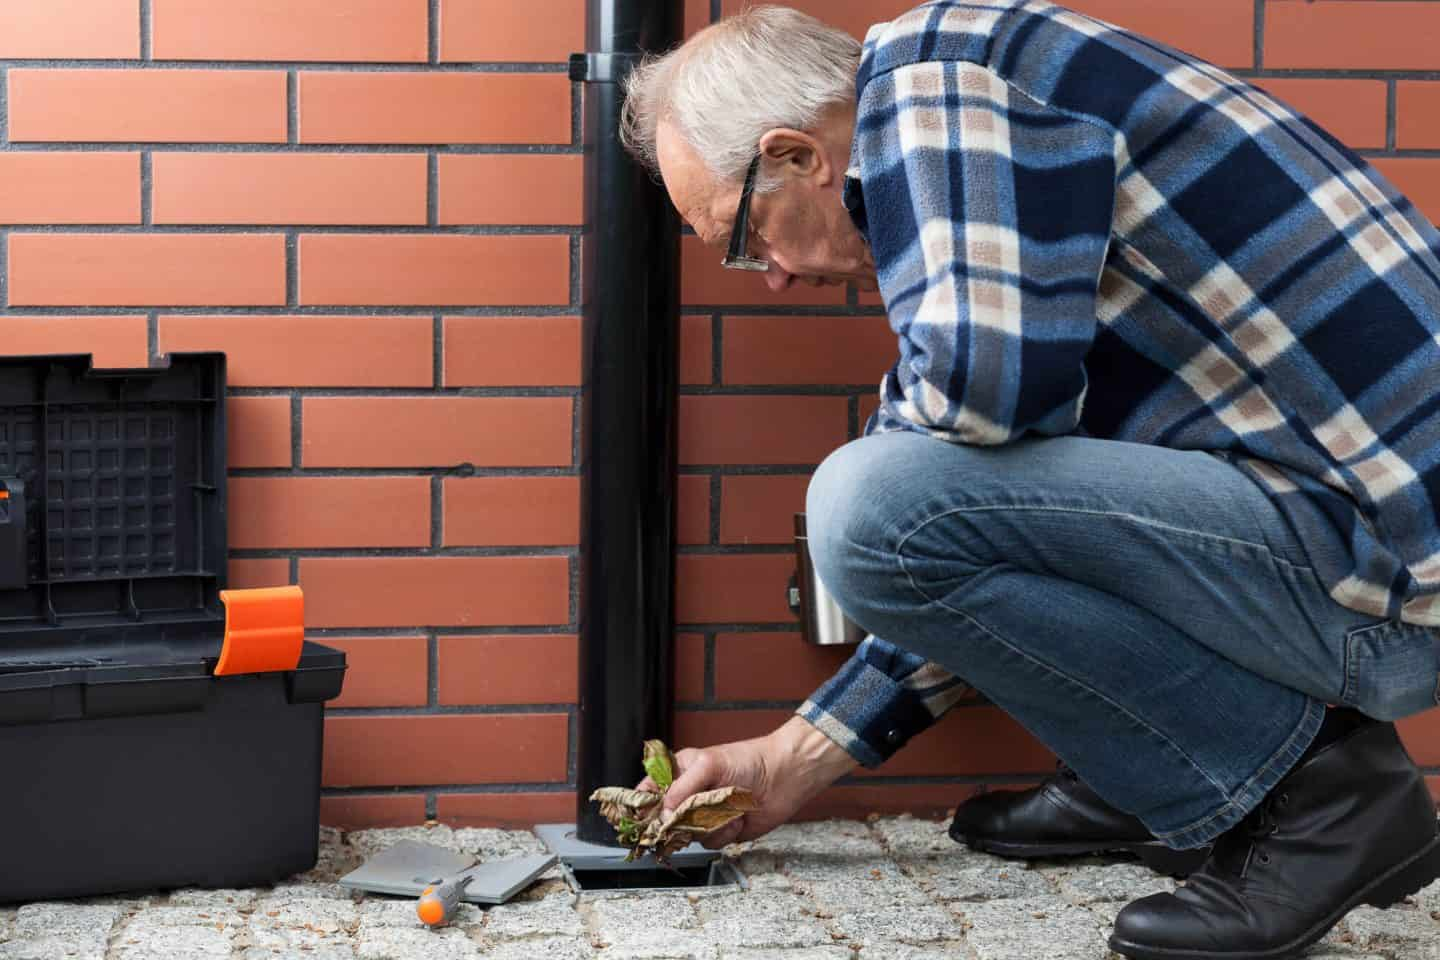 How Can I Protect The Foundations Of My Home?